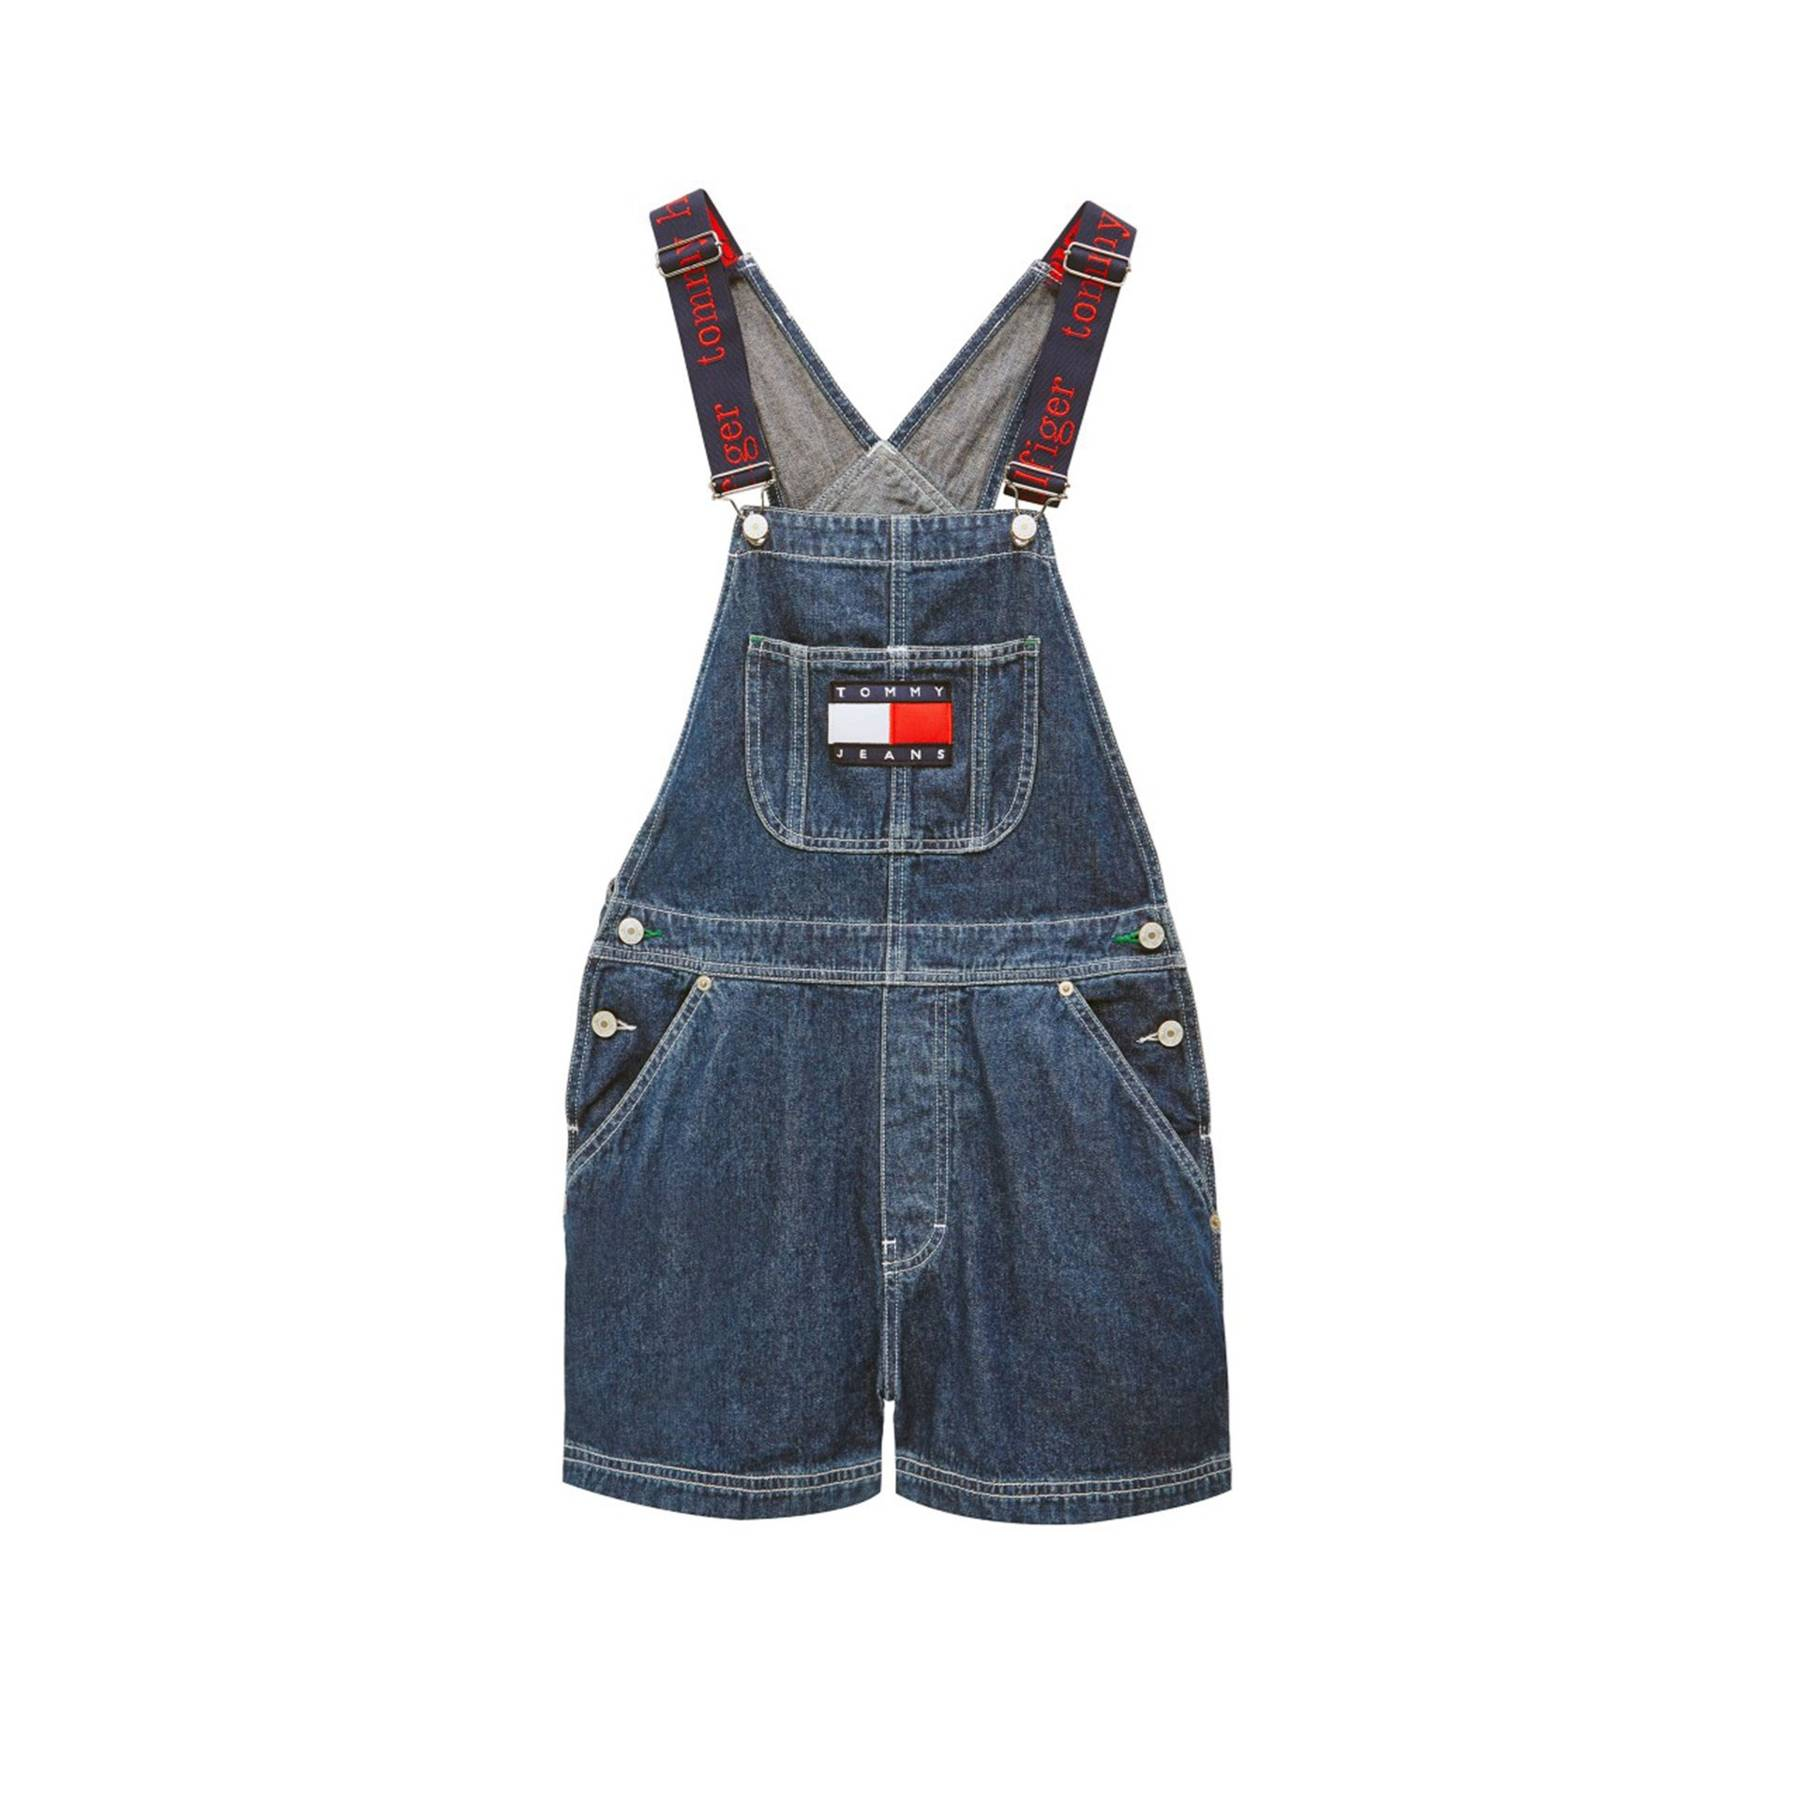 7cf905445 How to wear dungarees spring summer 2017 trend | Glamour UK